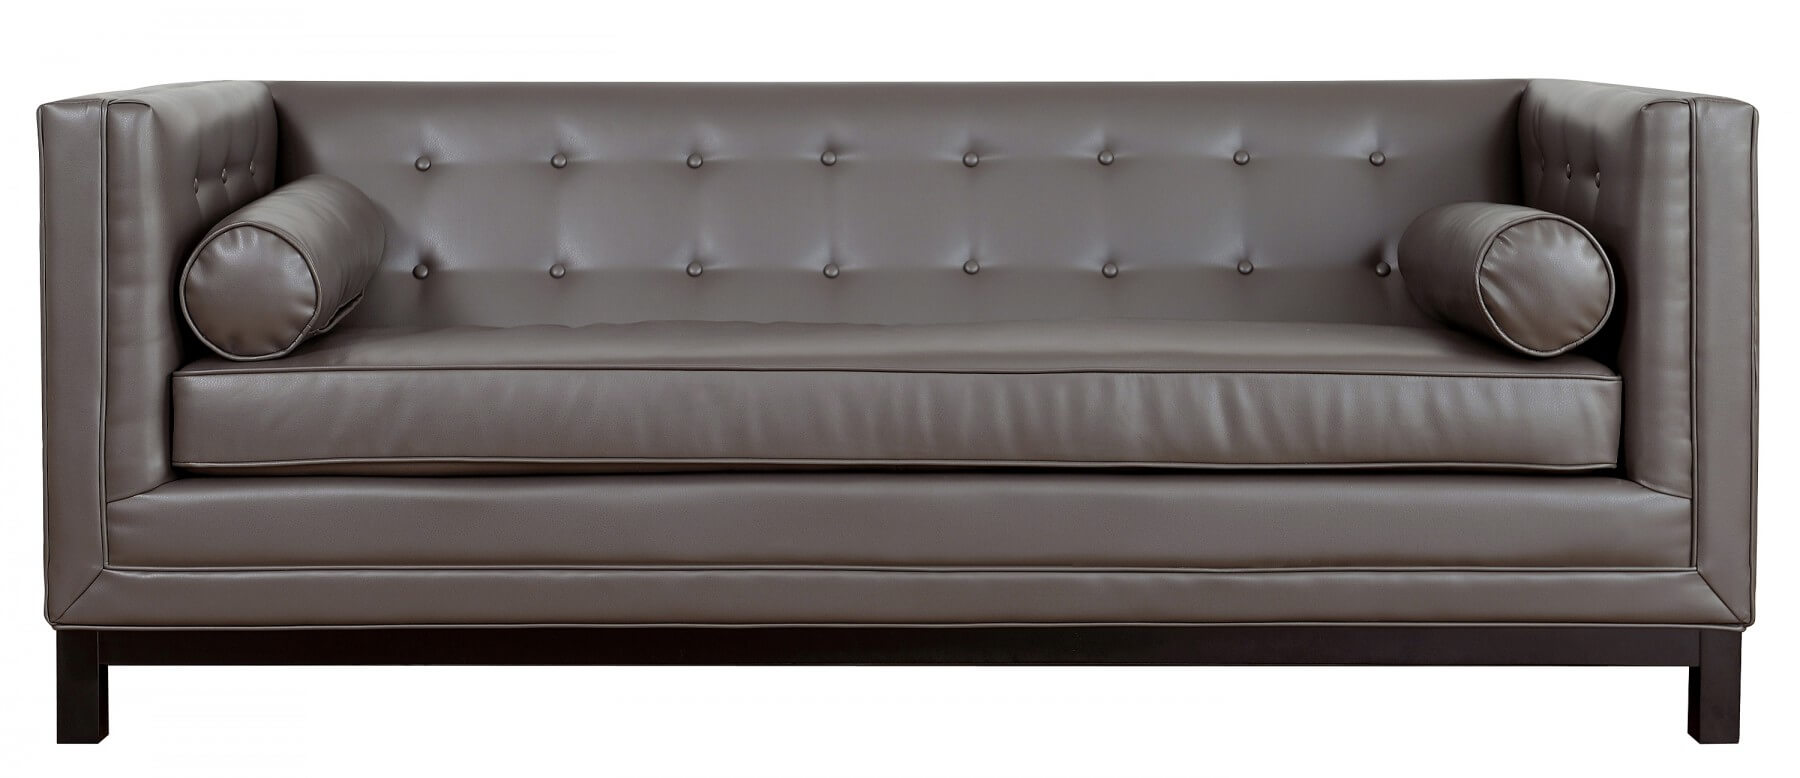 Captivating Zoe Leather Sofa By TOV Furniture Buy Online At Best Price   SohoMod